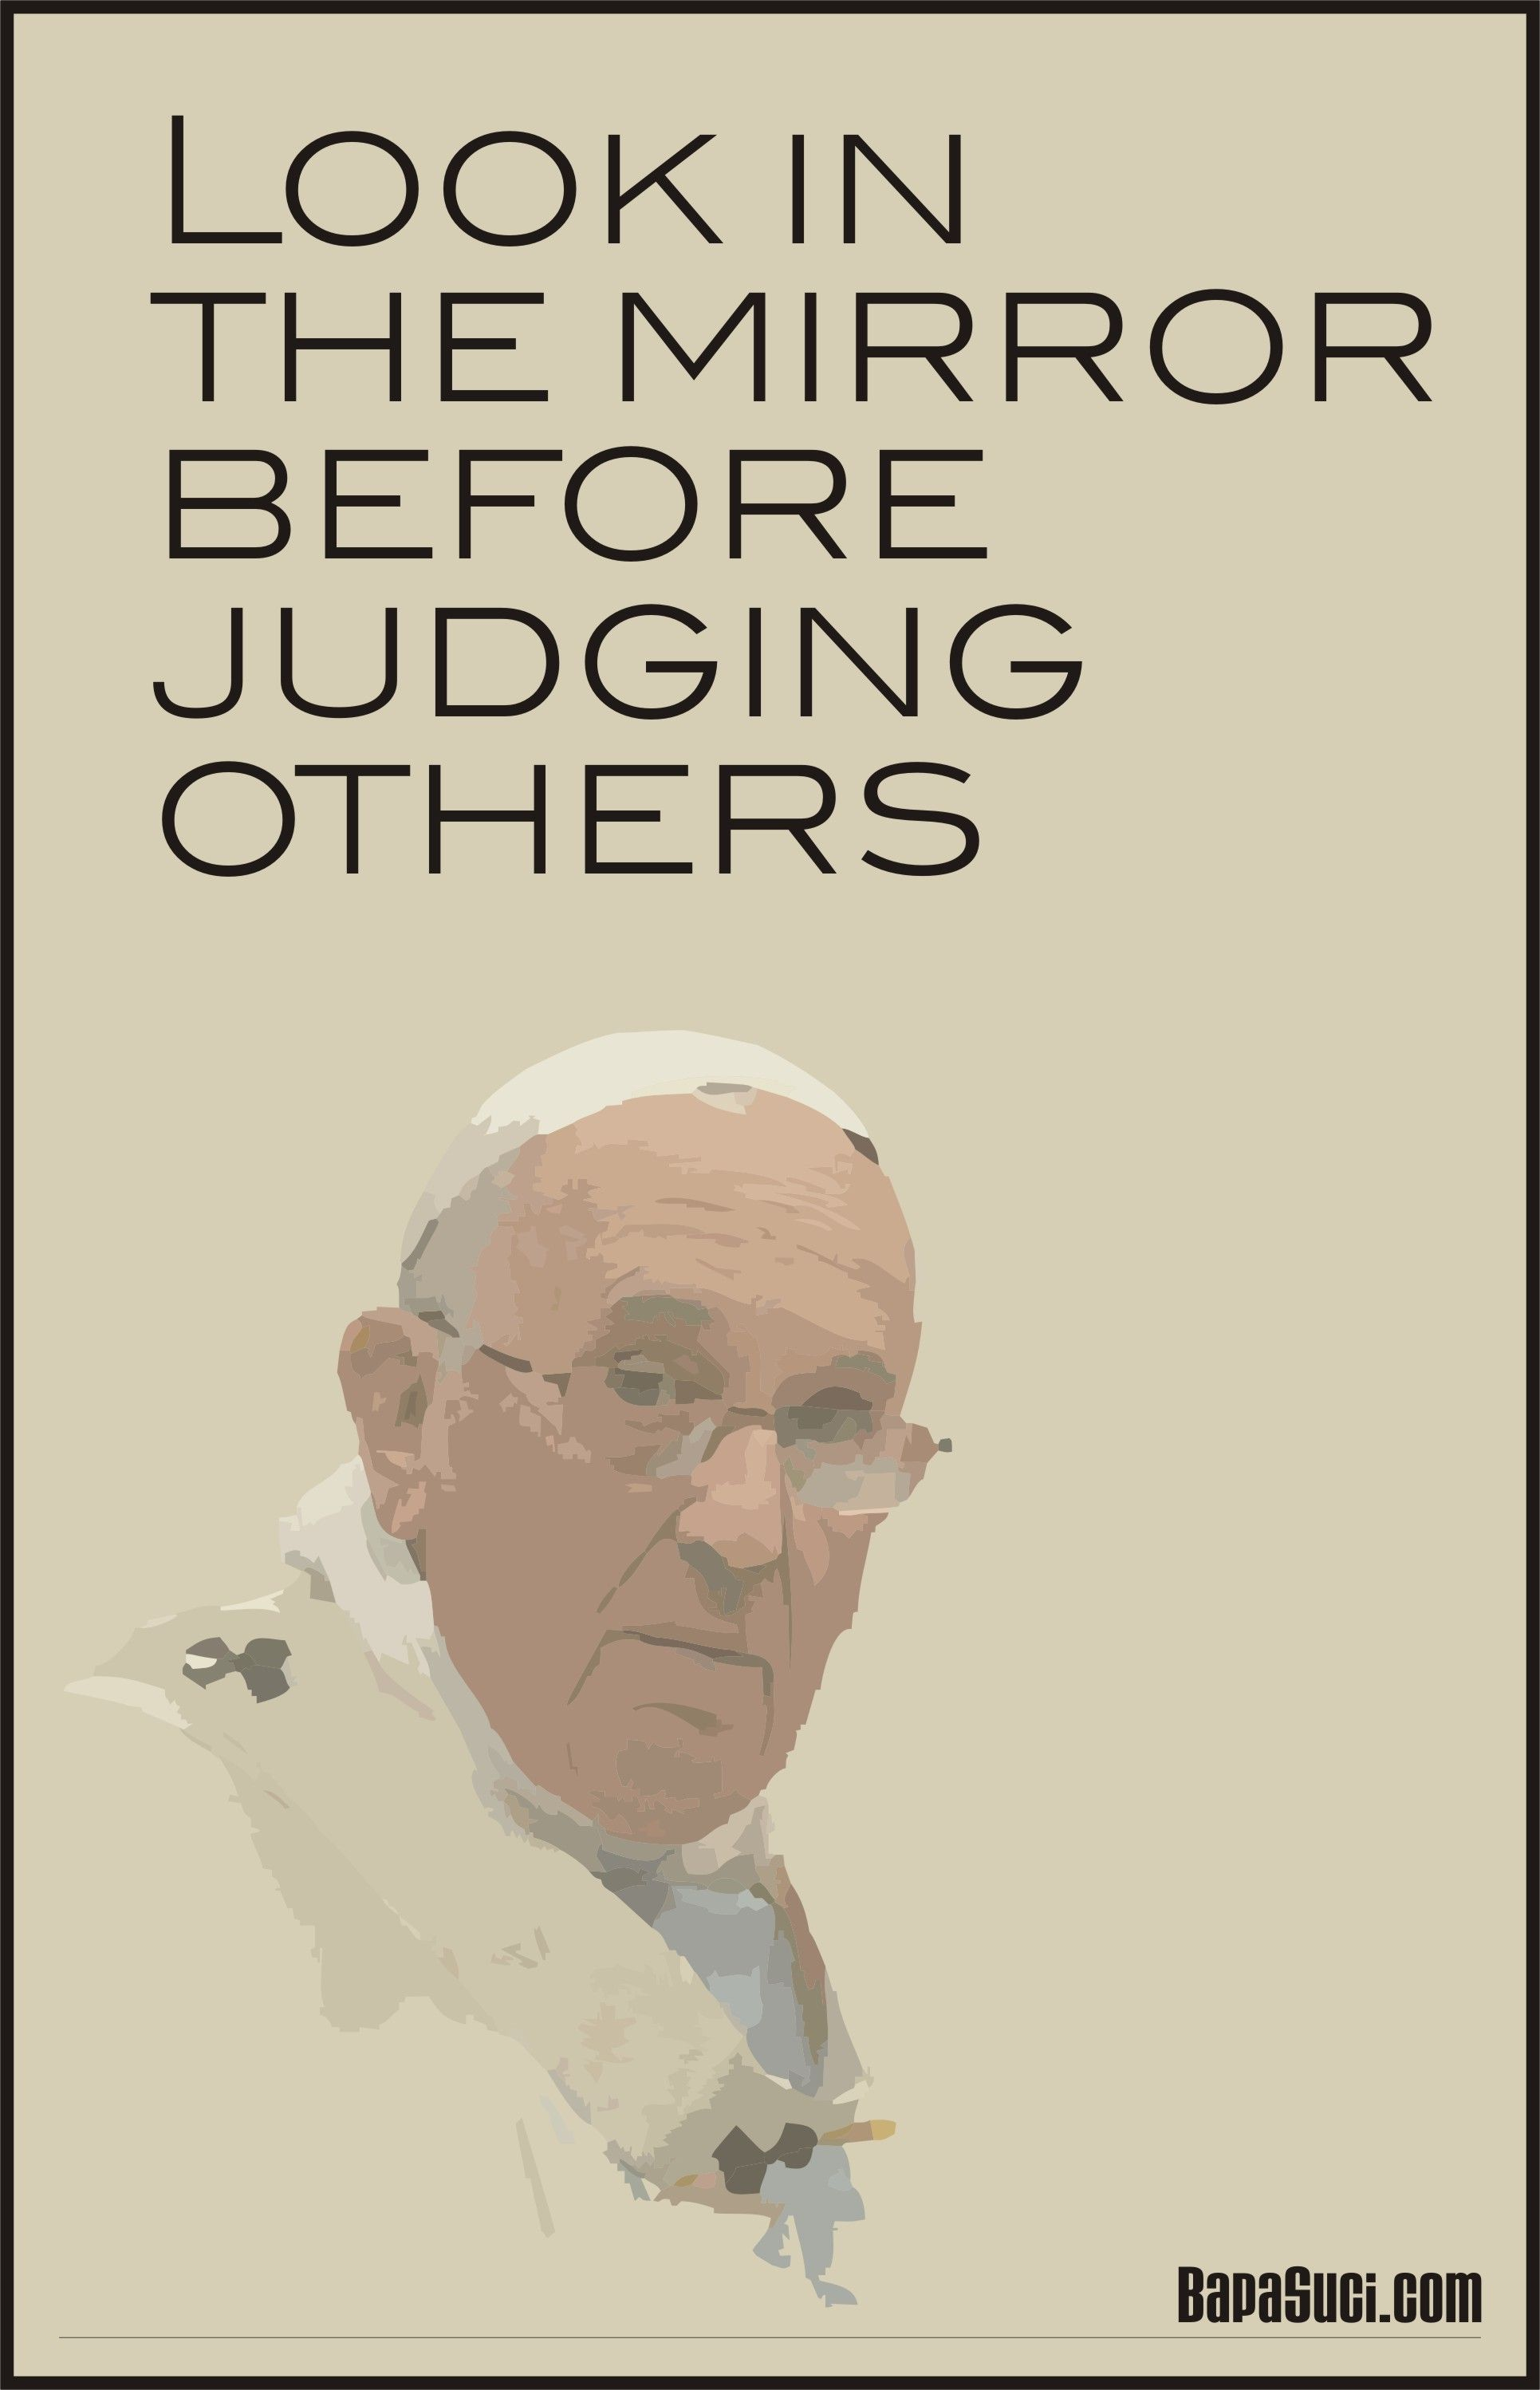 Before Judging Others We Should Look First In The Mirror To See How